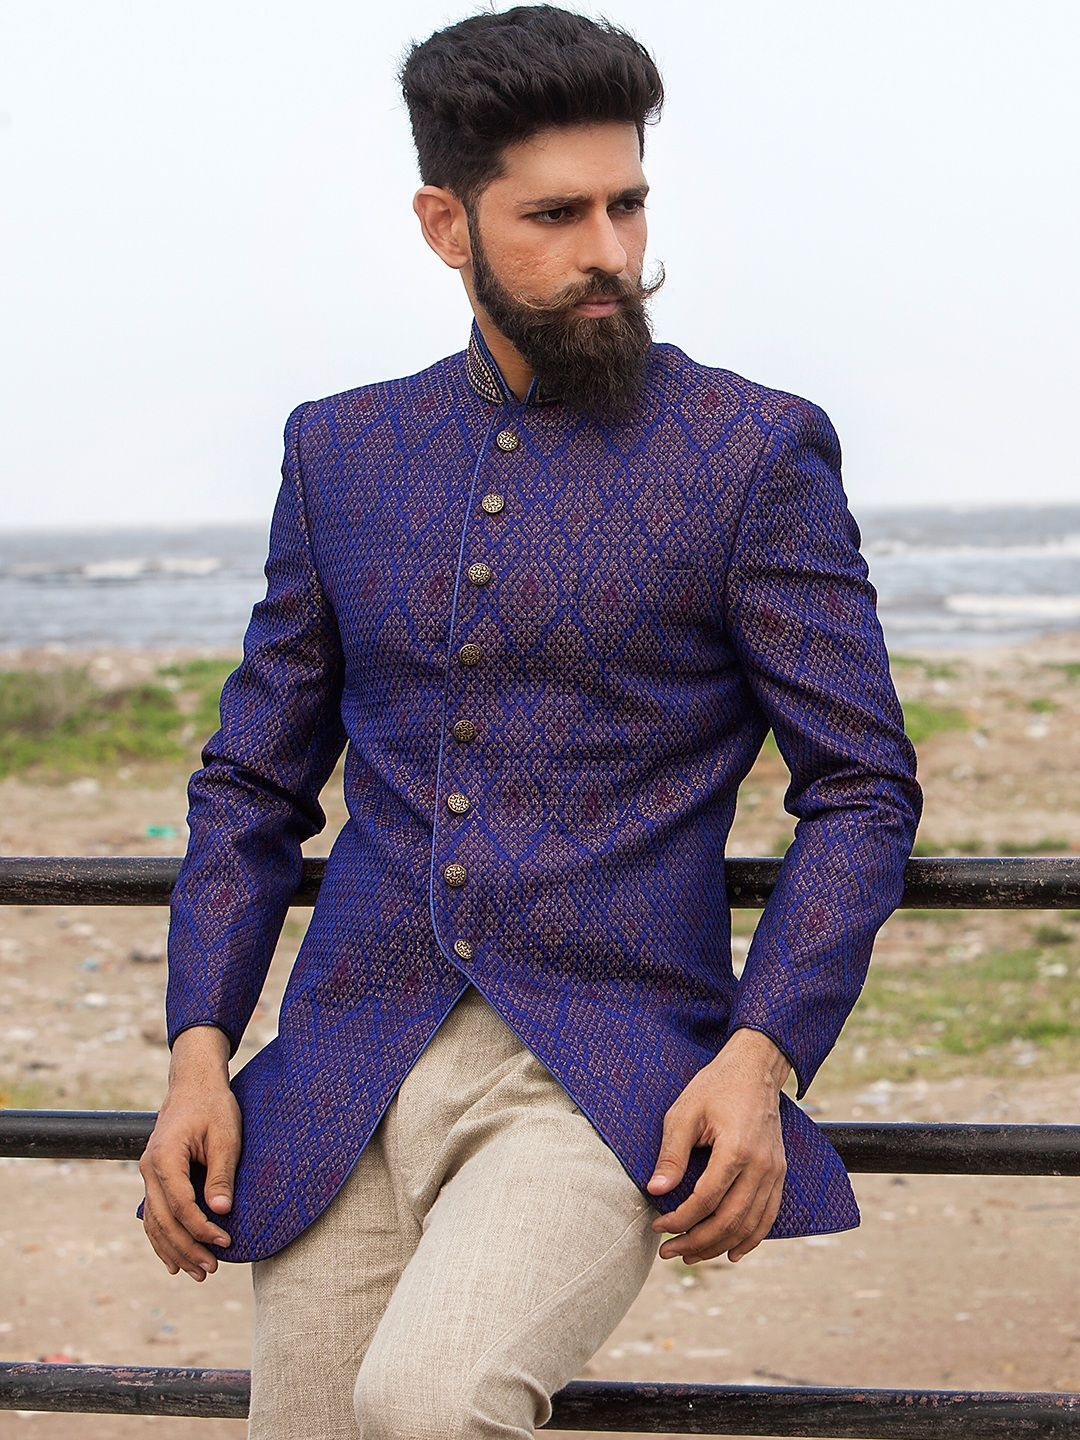 b69052b67a Shop Purple silk designer jodhpuri suit online from G3fashion India. Brand  - G3, Product code - G3-MCO0709, Price - 18995, Color - Purple, Fabric -  Silk,